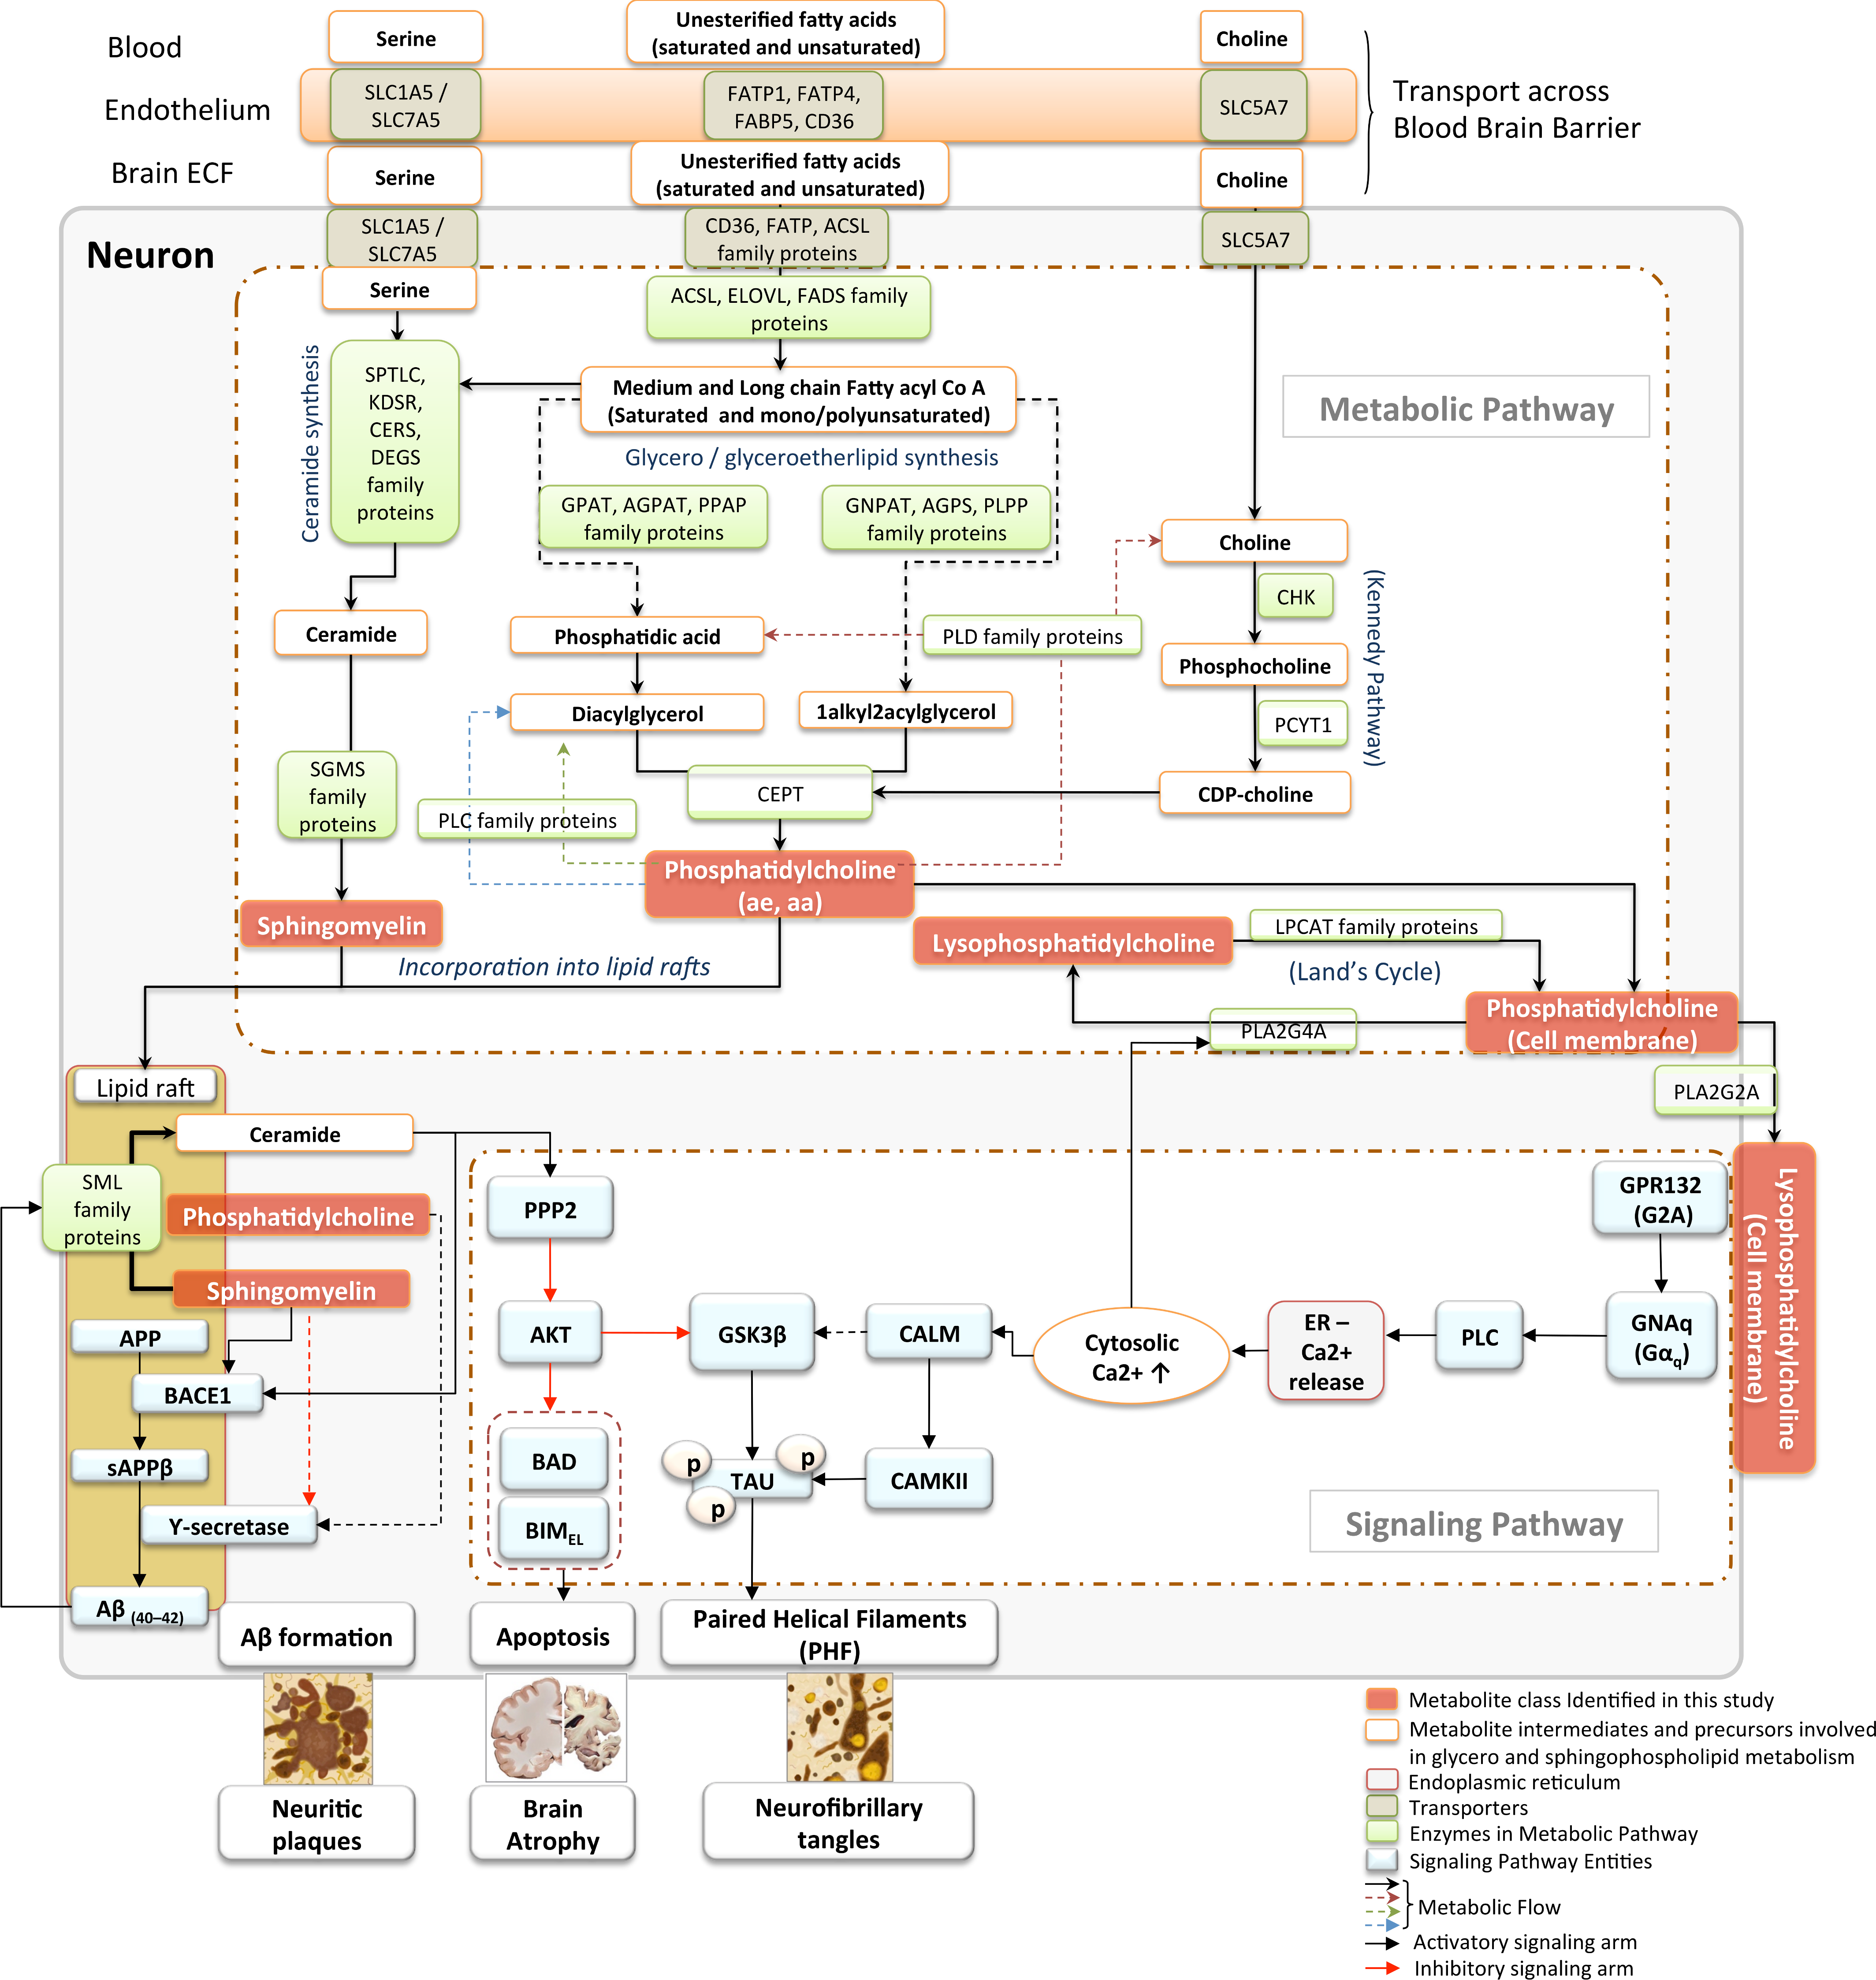 Metabolic pathways and signaling cascades involving glycerophospholipids and sphingolipids: relevance to AD pathogenesis.